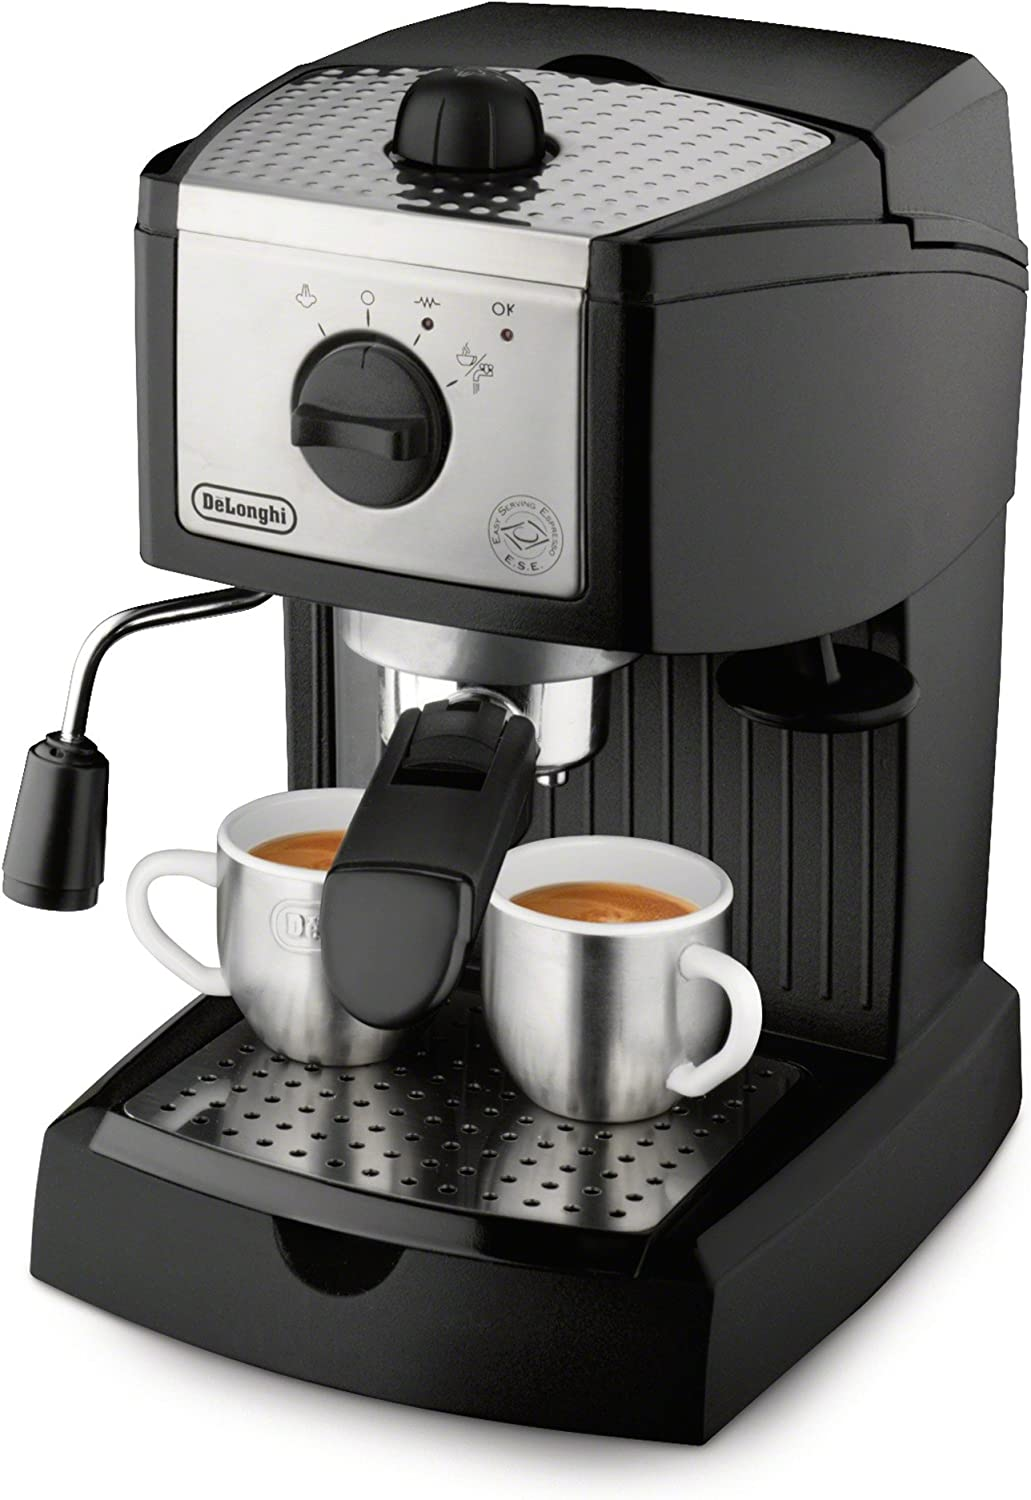 De'Longhi BAR Pump Espresso and Cappuccino Maker review